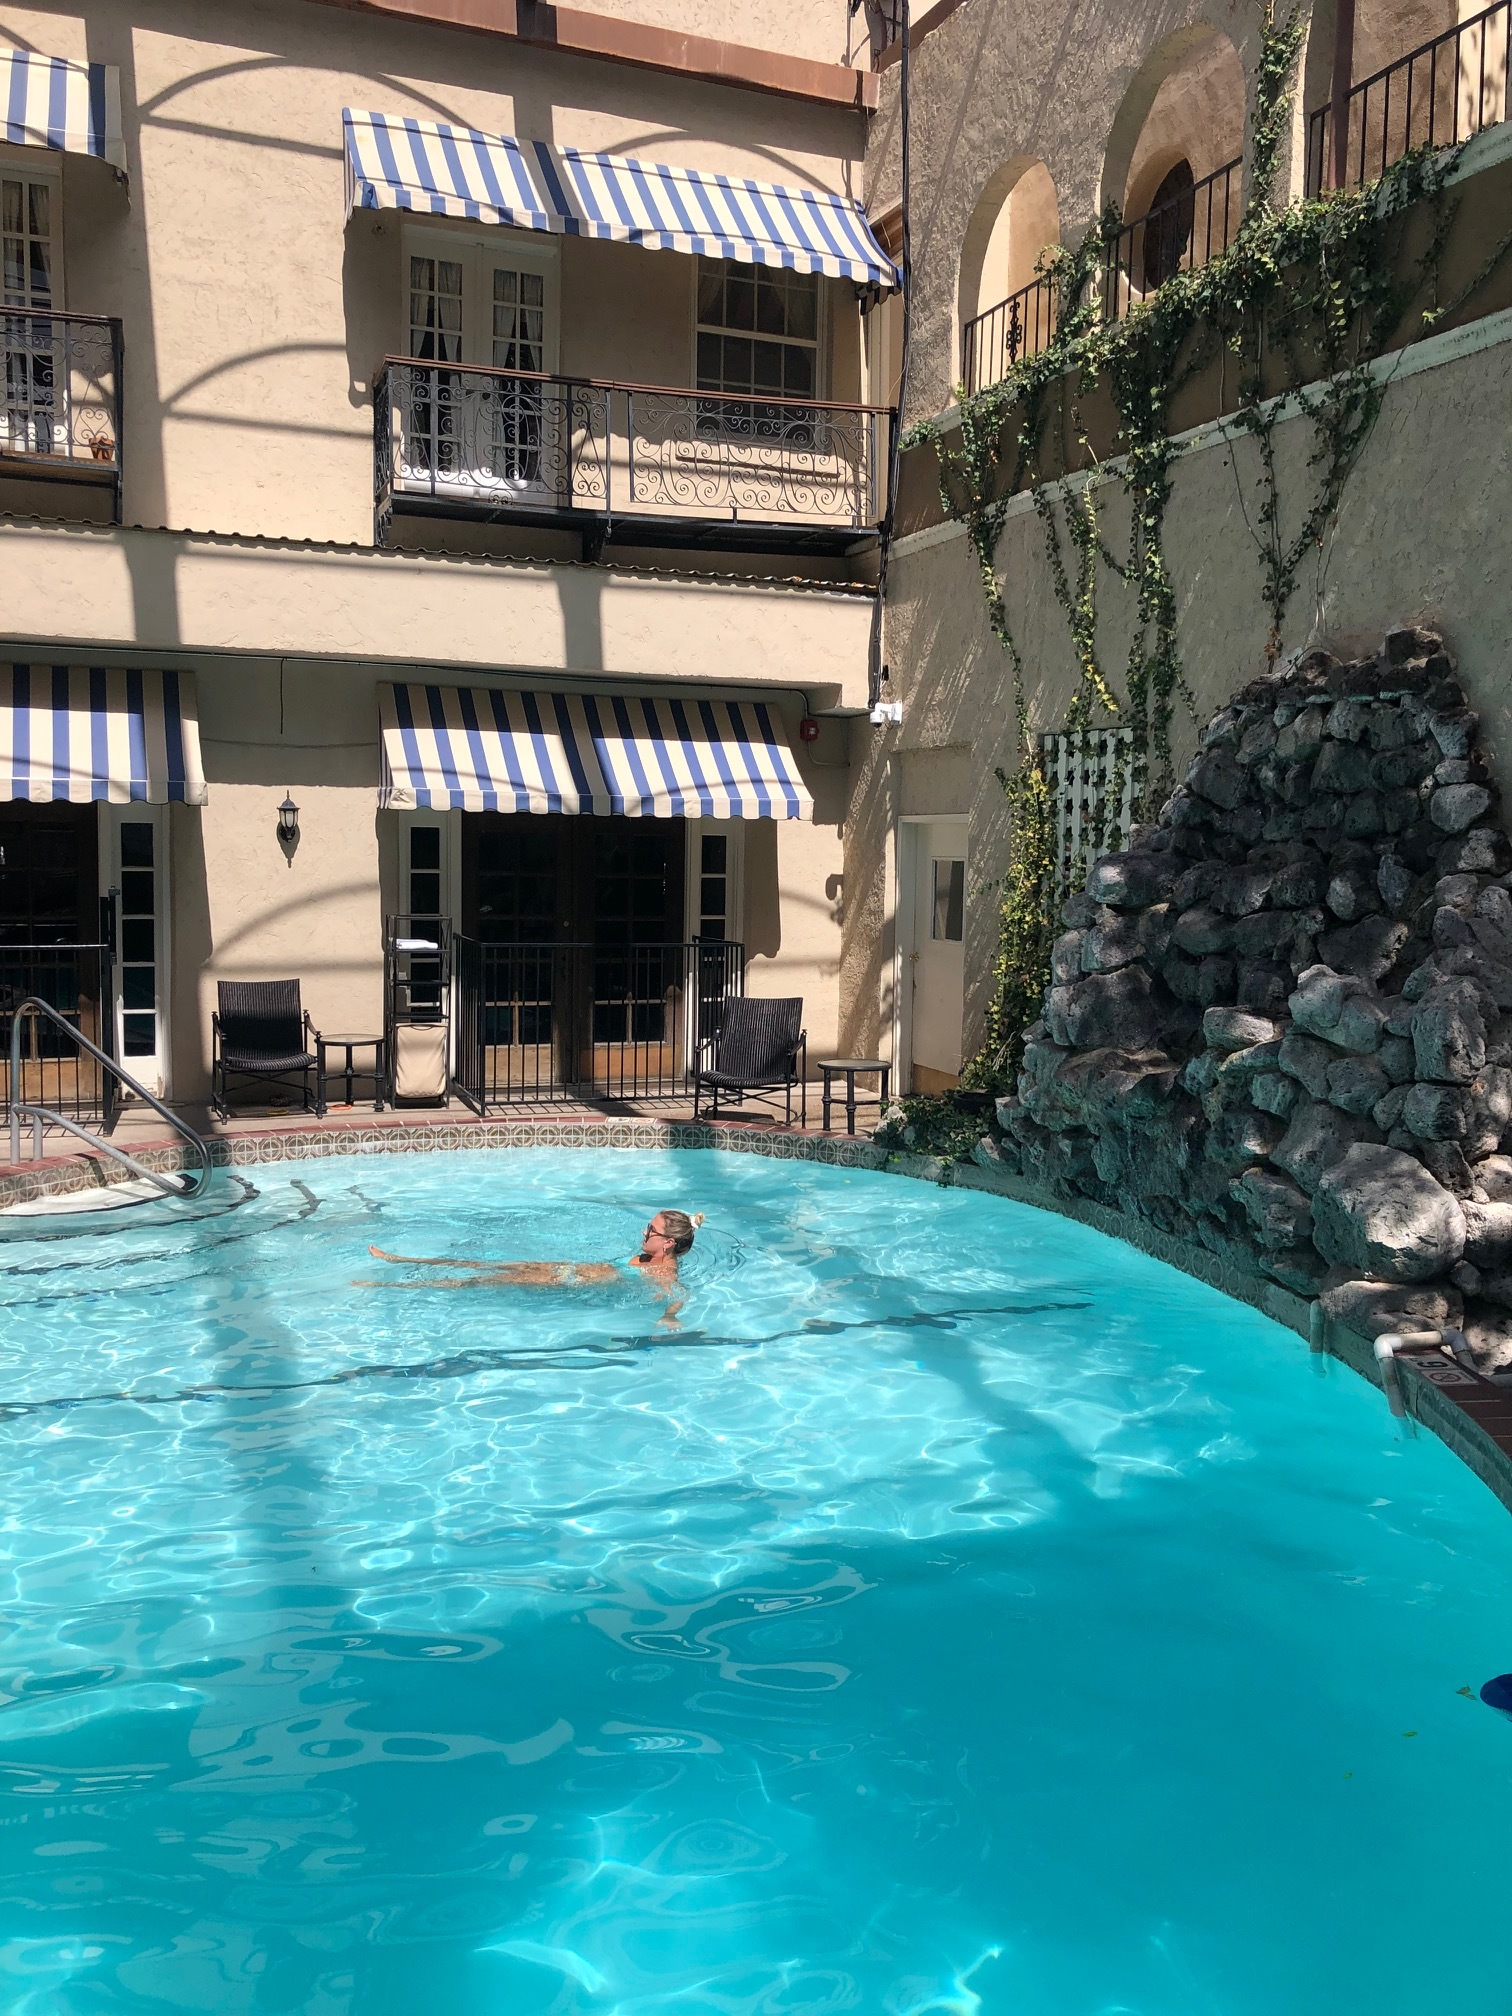 Loved the pool at Hotel Paisano